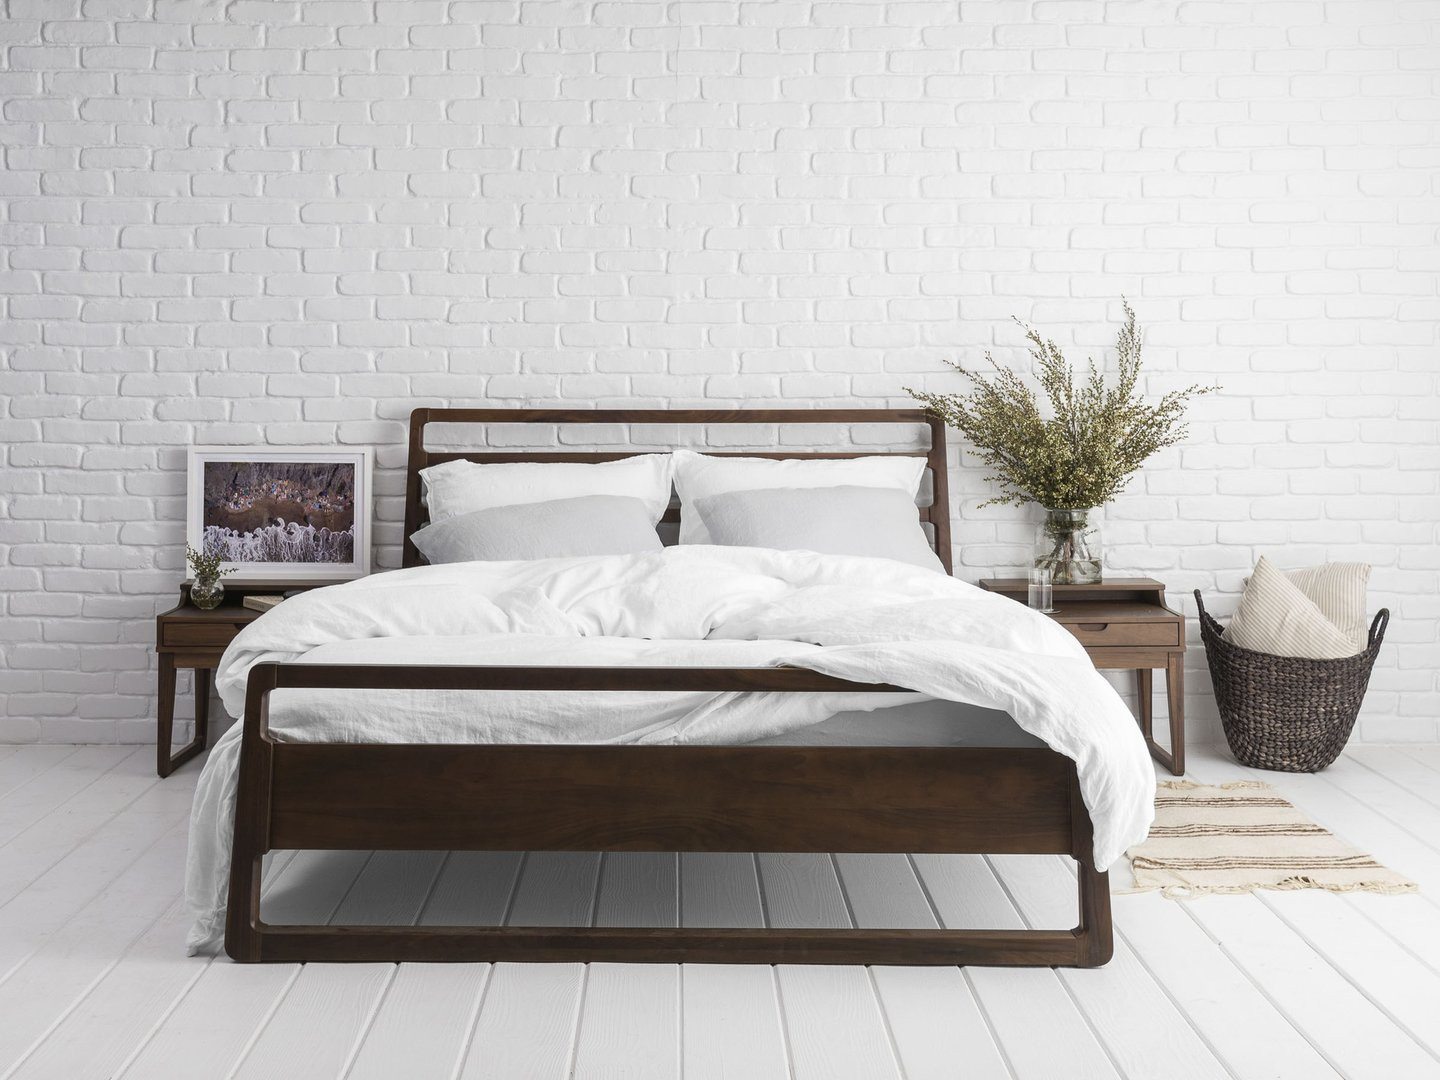 White Linen Duvet Cover on Bed